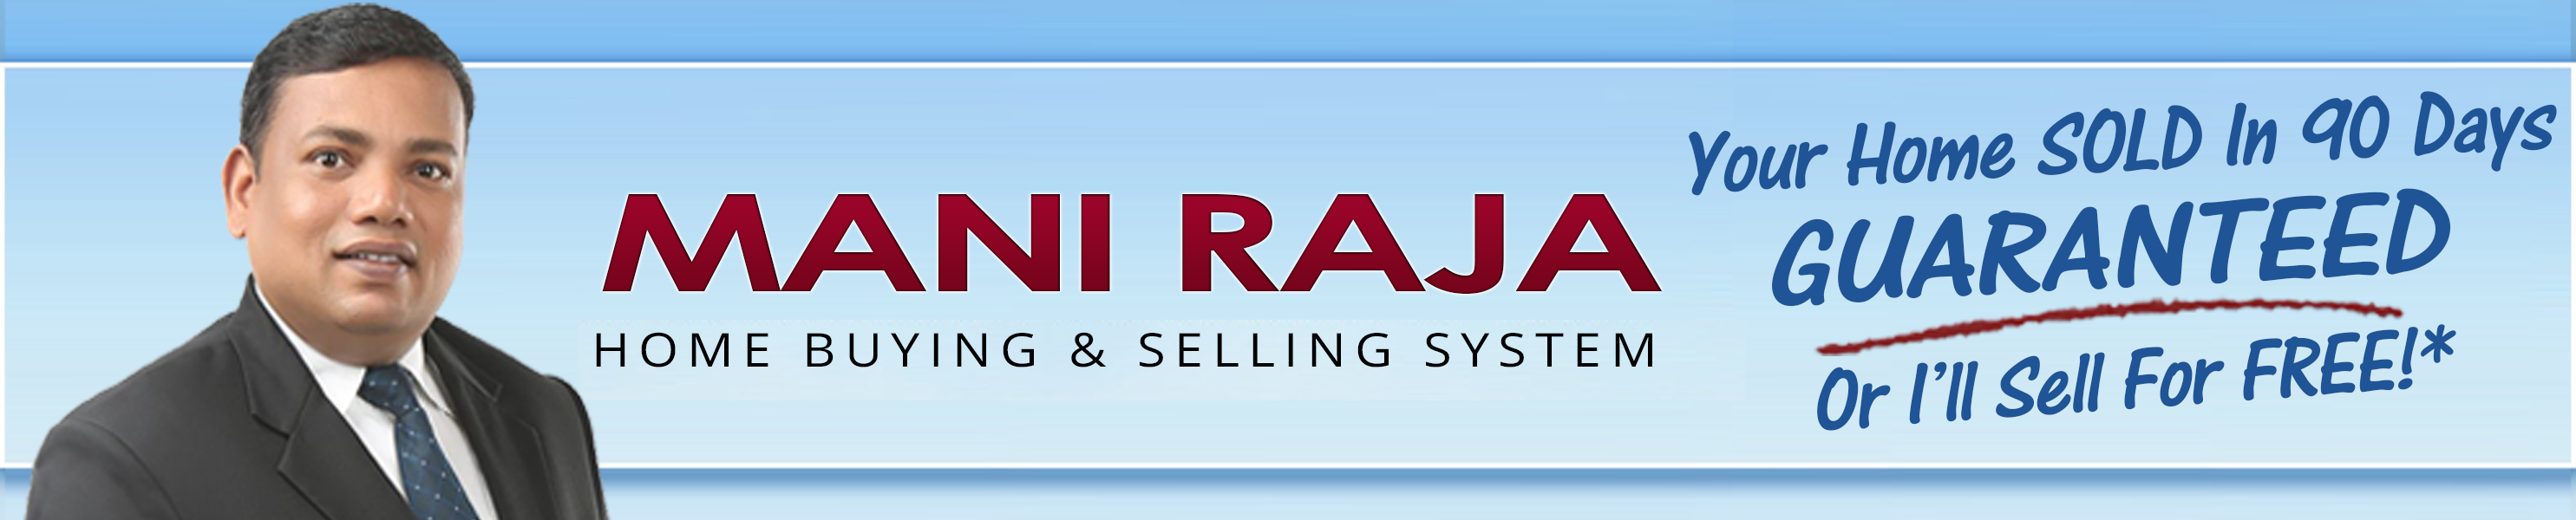 The Mani Raja Home Buying & Selling System